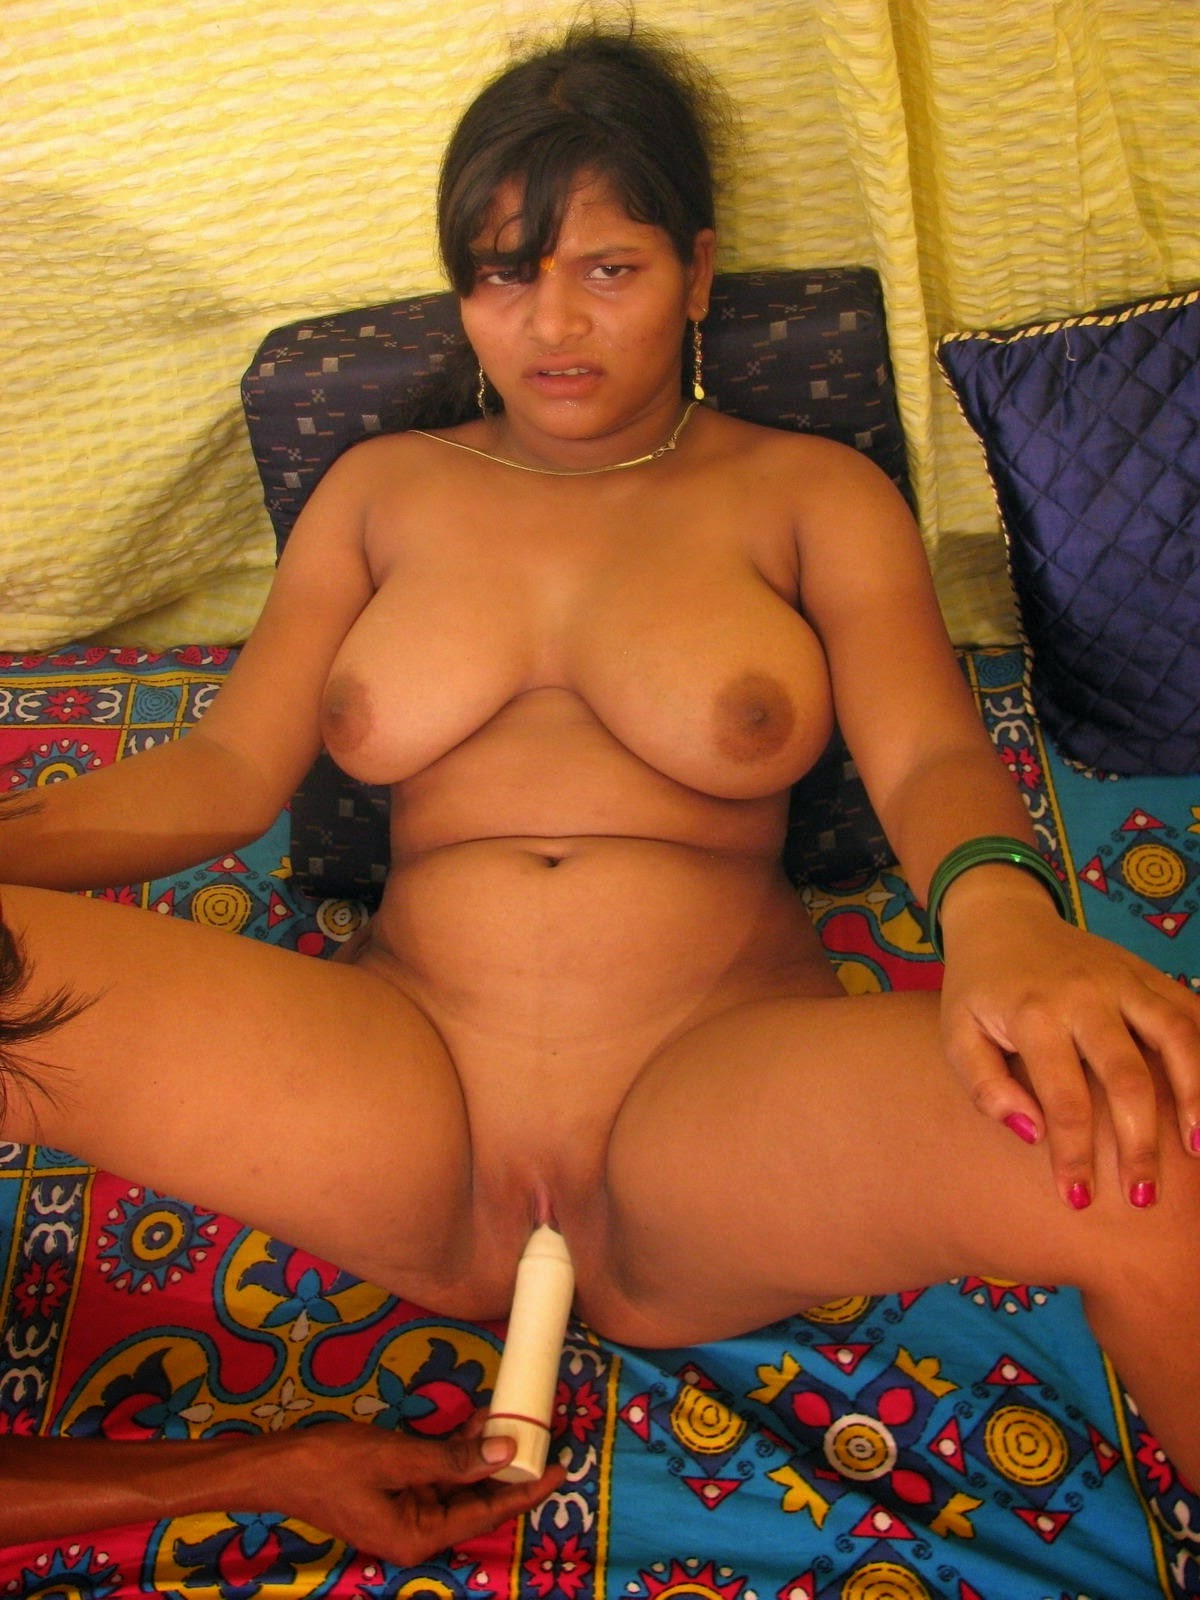 Desi girl xxx images download sexy pic